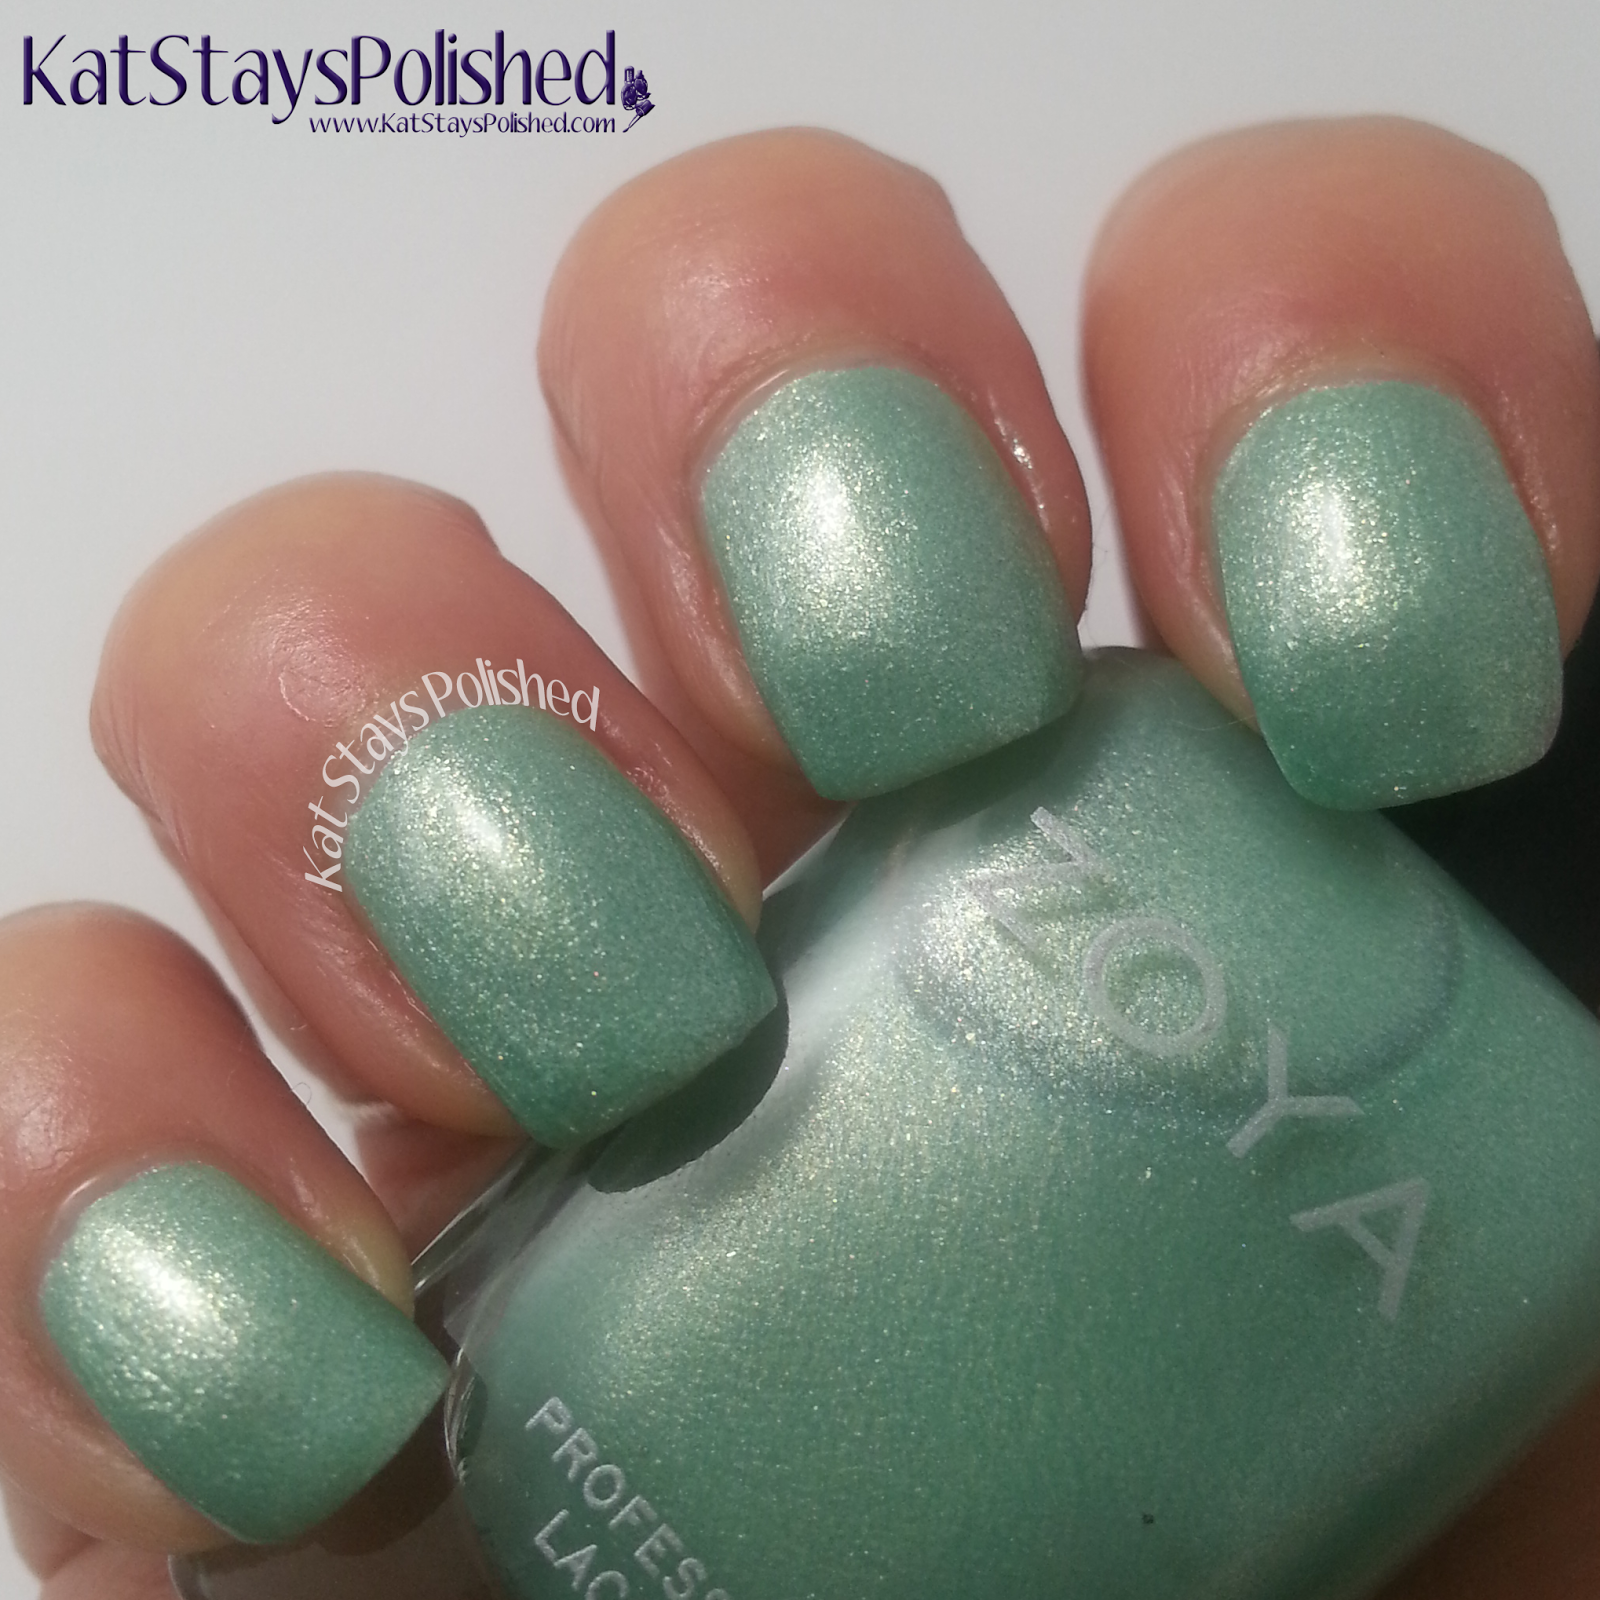 Zoya Awaken and Monet - Spring 2014 - Dillon | Kat Stays Polished